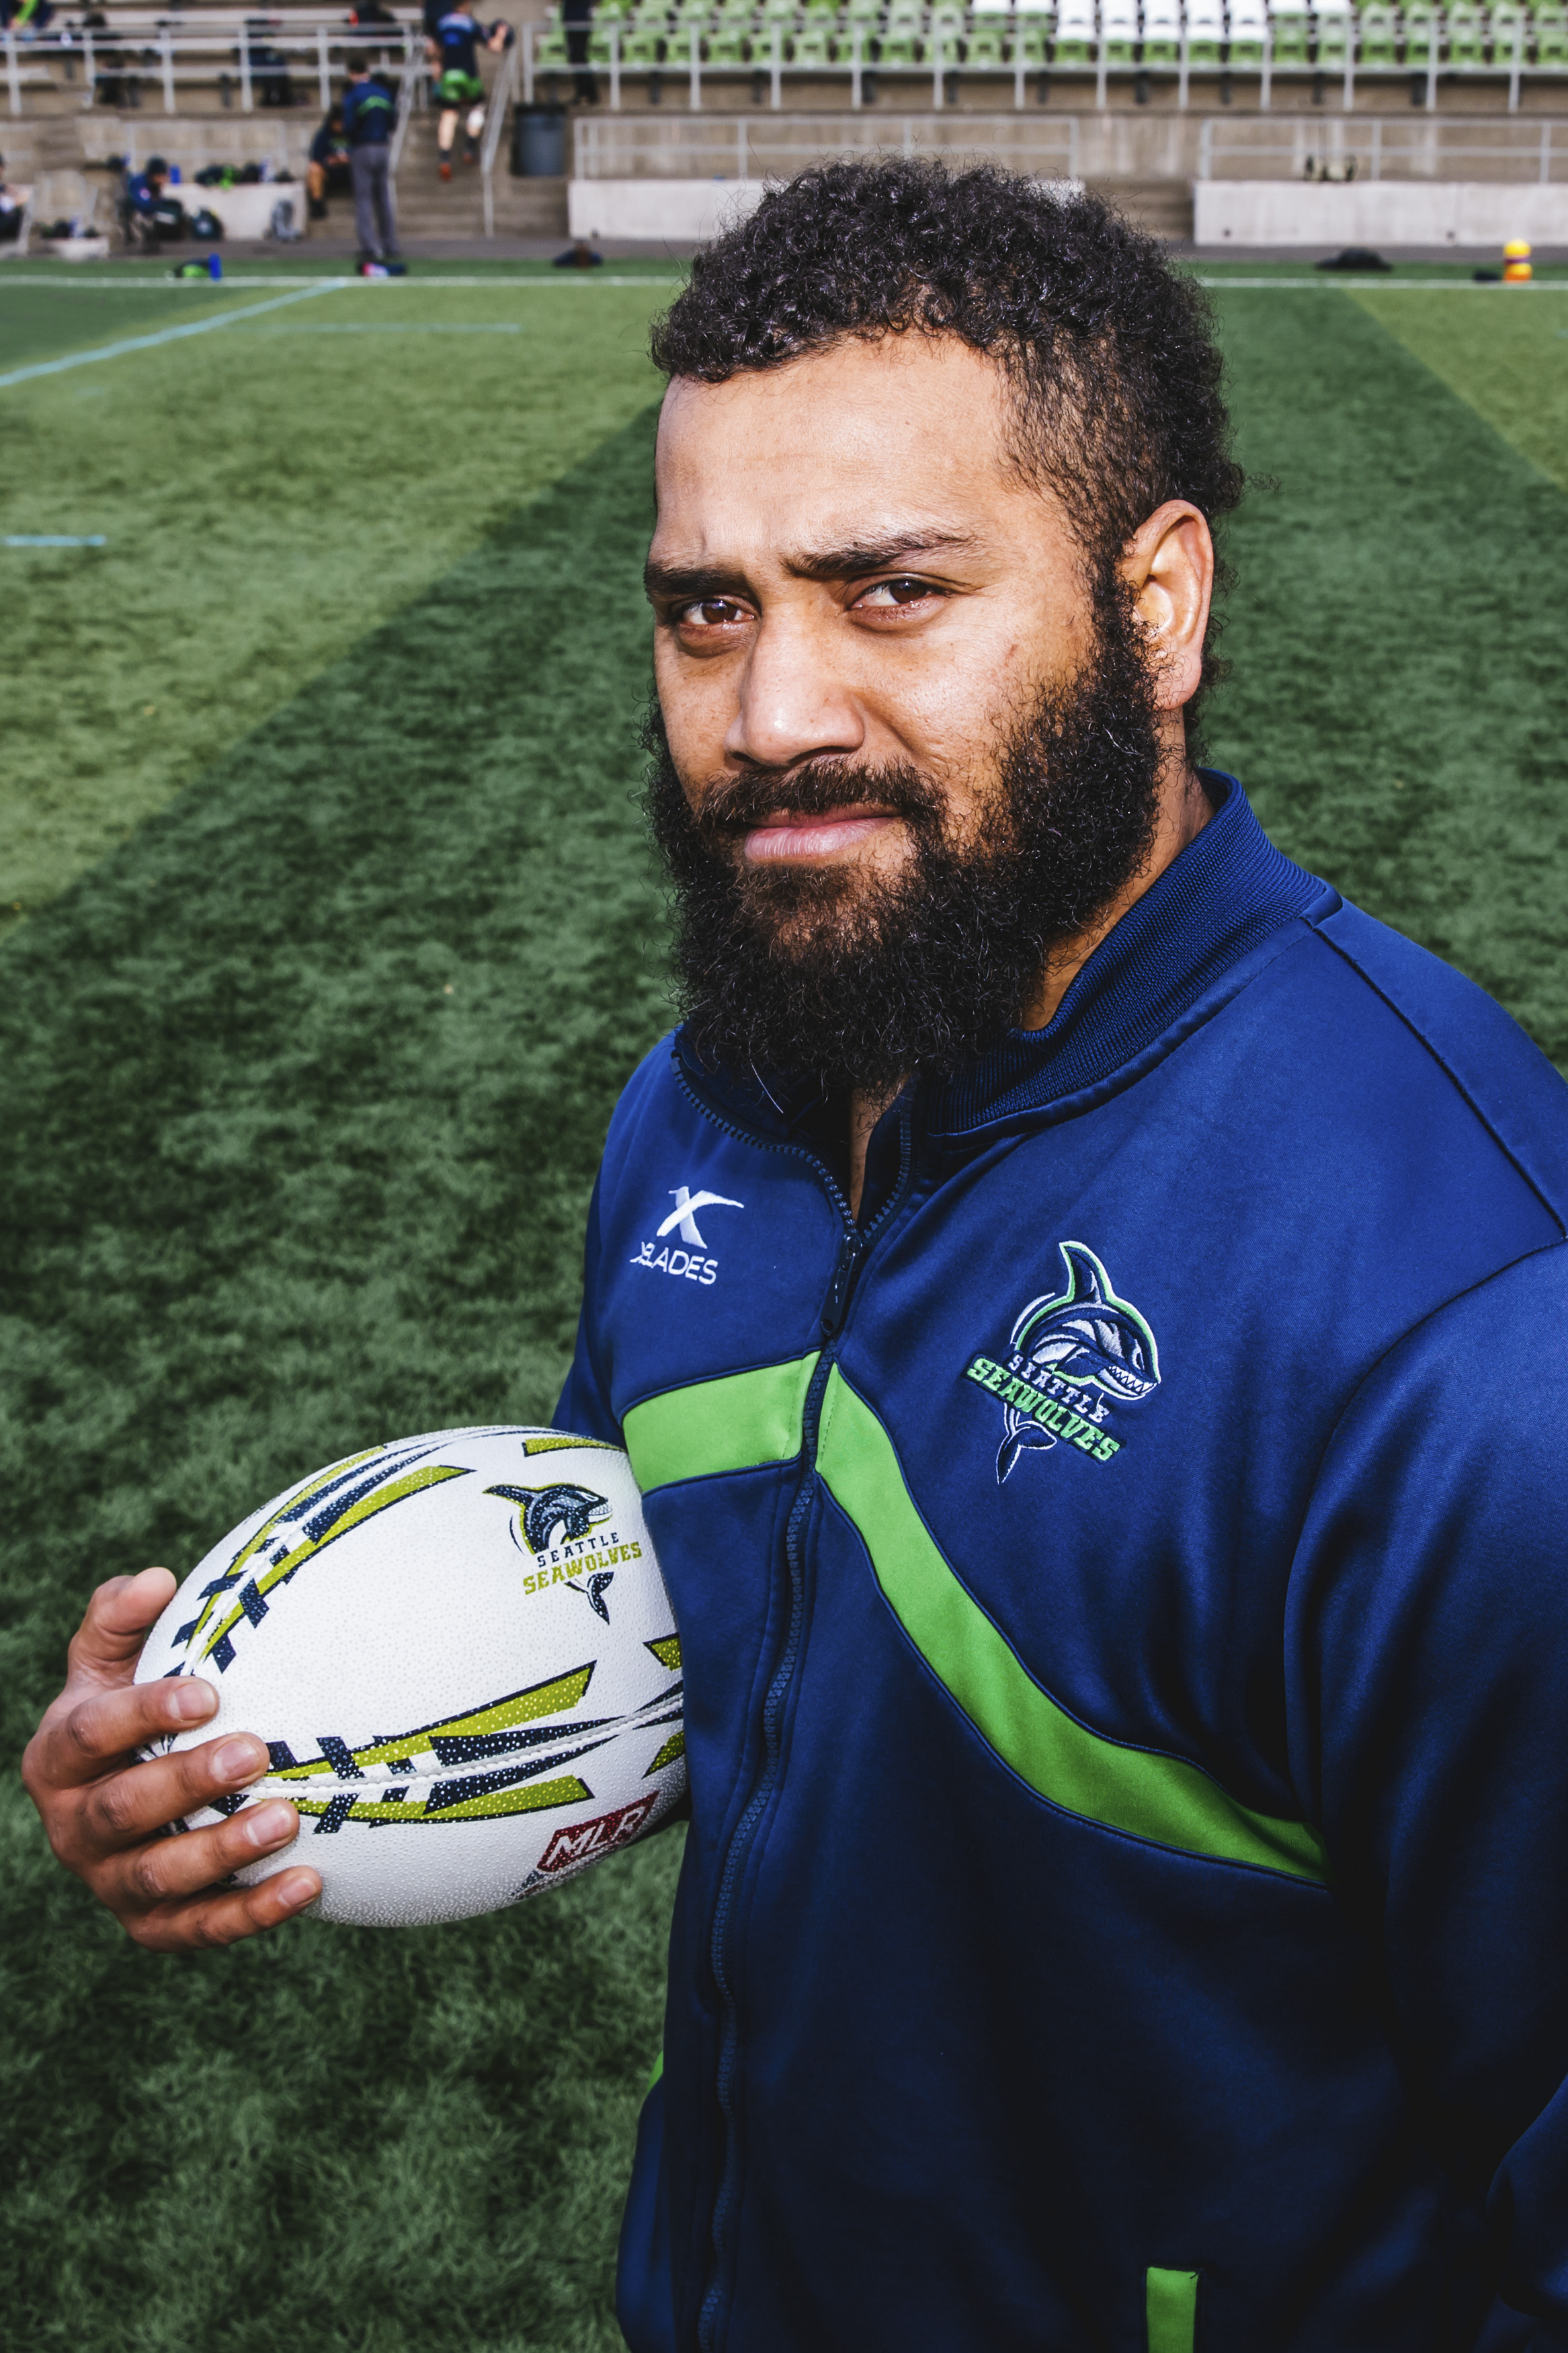 This is William! The 34-year-old is originally from Fiji and plays Center for the Seawolves. His favorite film is Aquaman! (Image: Sunita Martini / Seattle Refined).